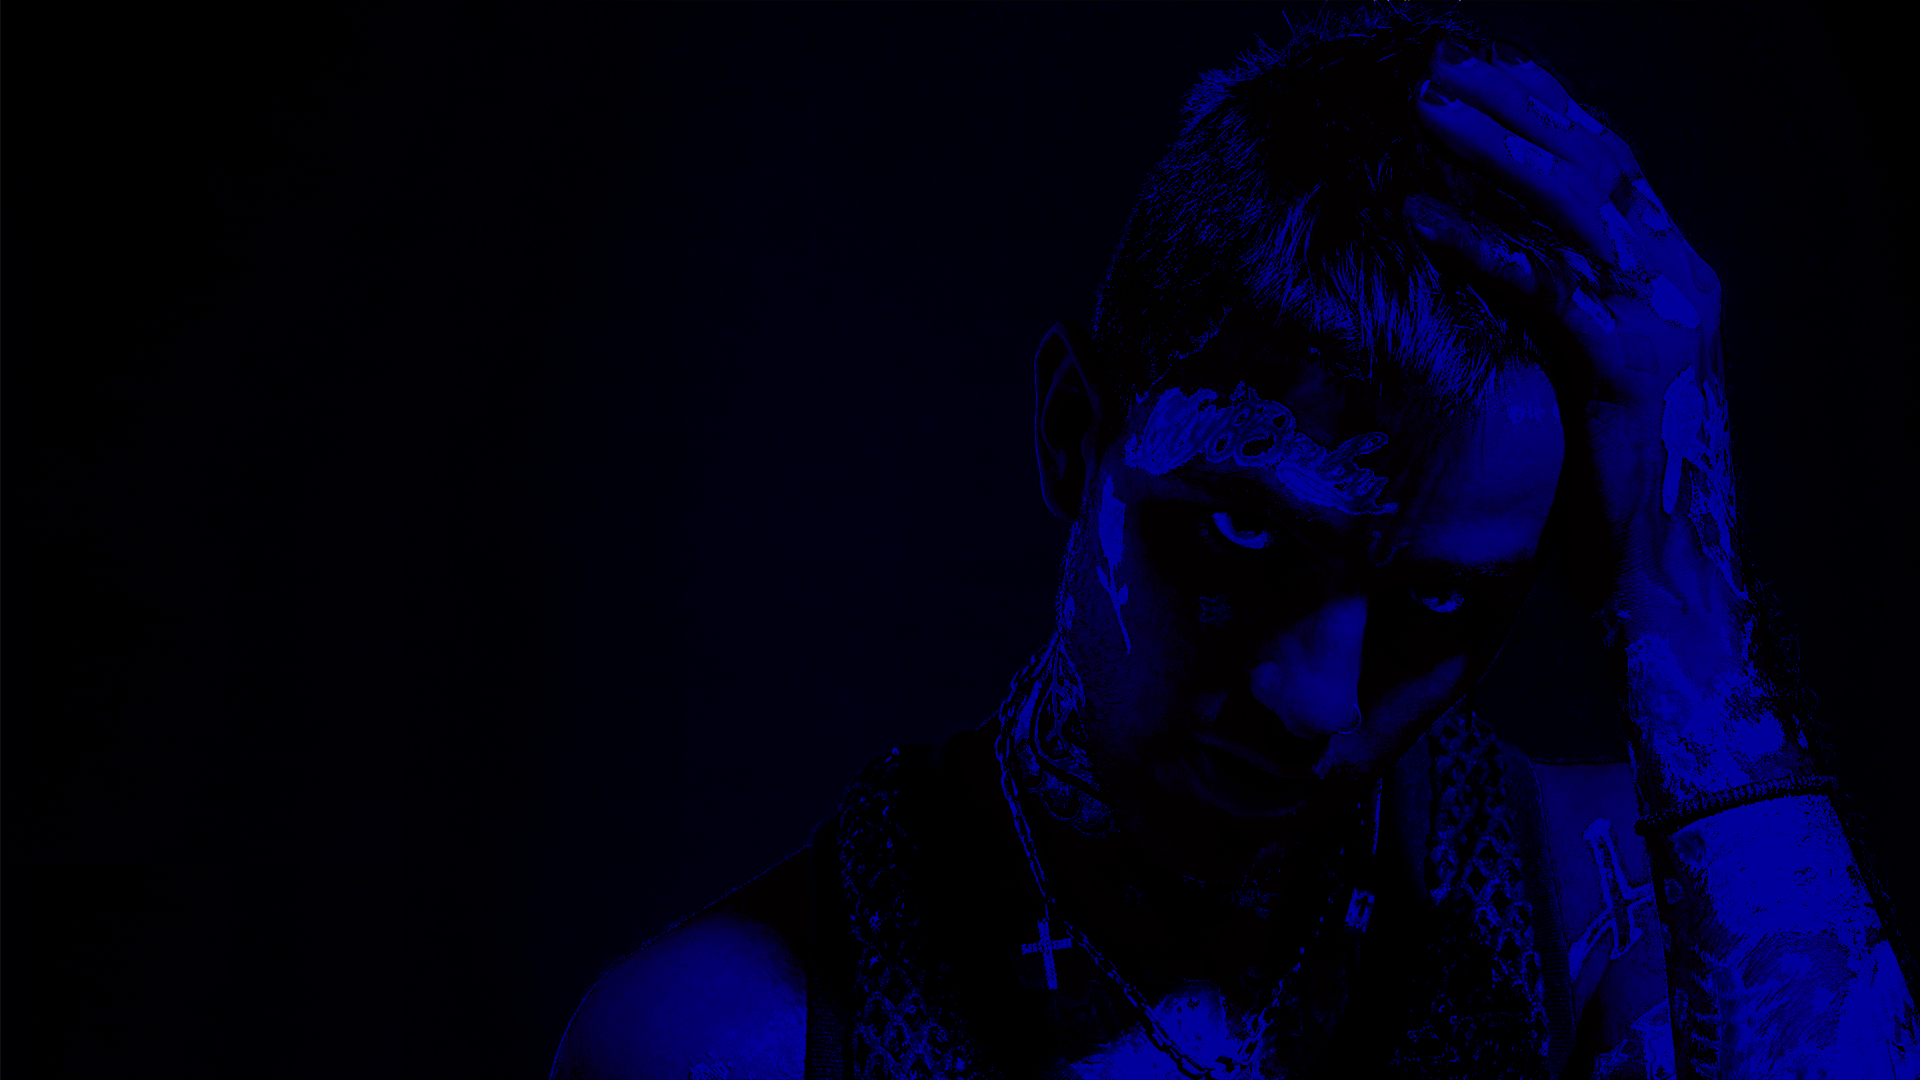 1 Lil Peep Hd Wallpapers Background Images Wallpaper Abyss Only the best hd background pictures. 1 lil peep hd wallpapers background